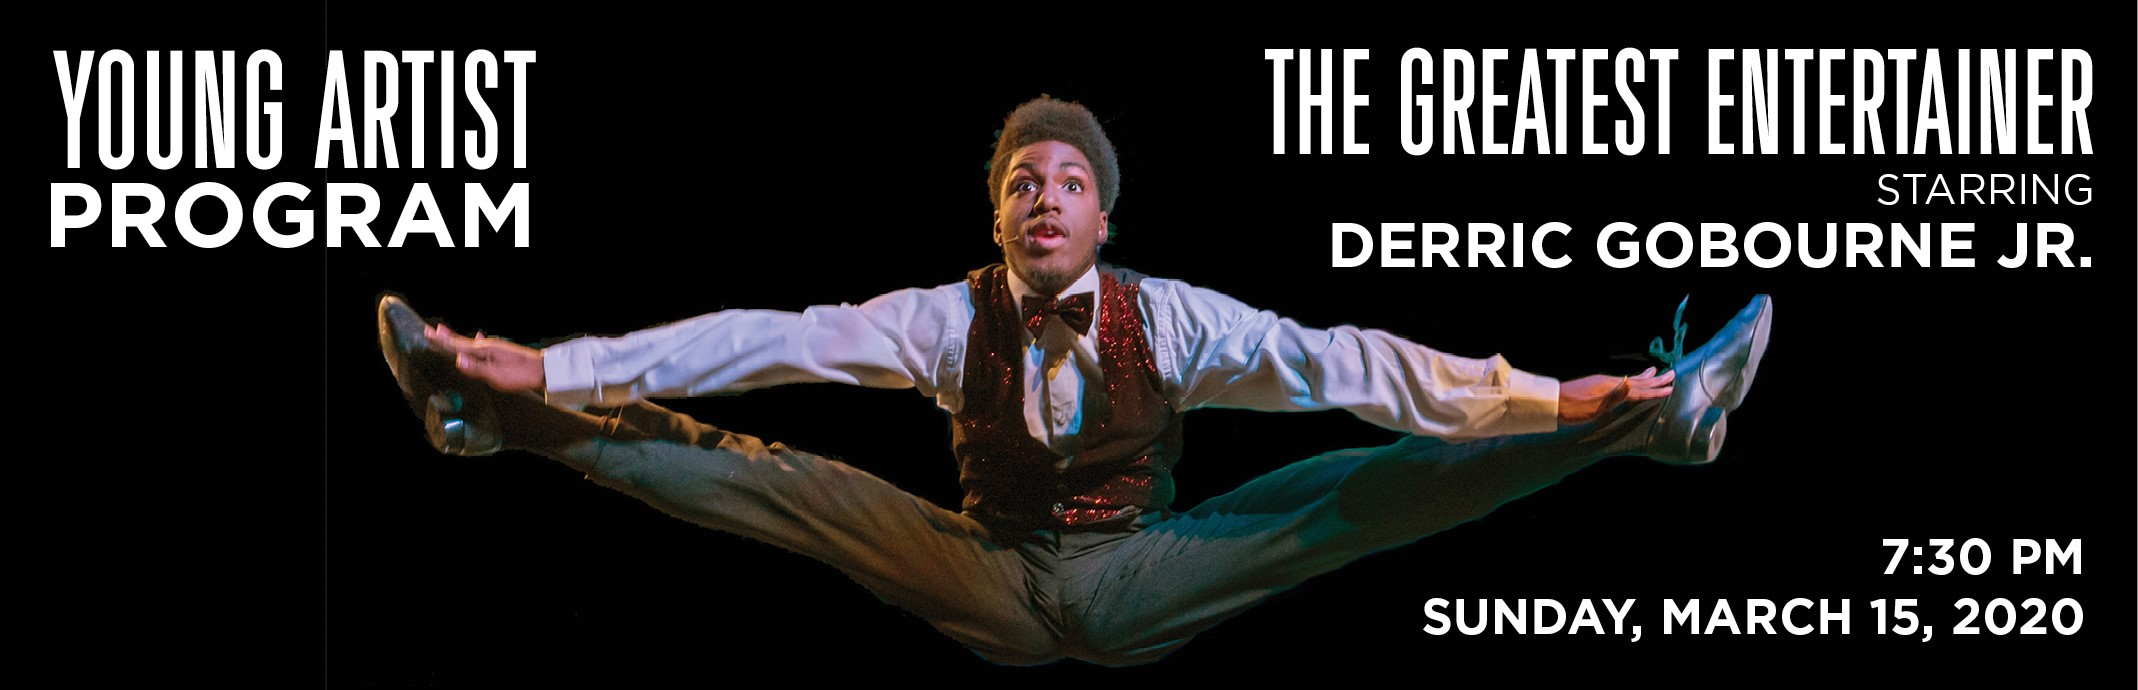 Young Artist Program: The Greatest Entertainer Starring Derric Gobourne Jr. 7:30pm Sunday, March 15, 2020